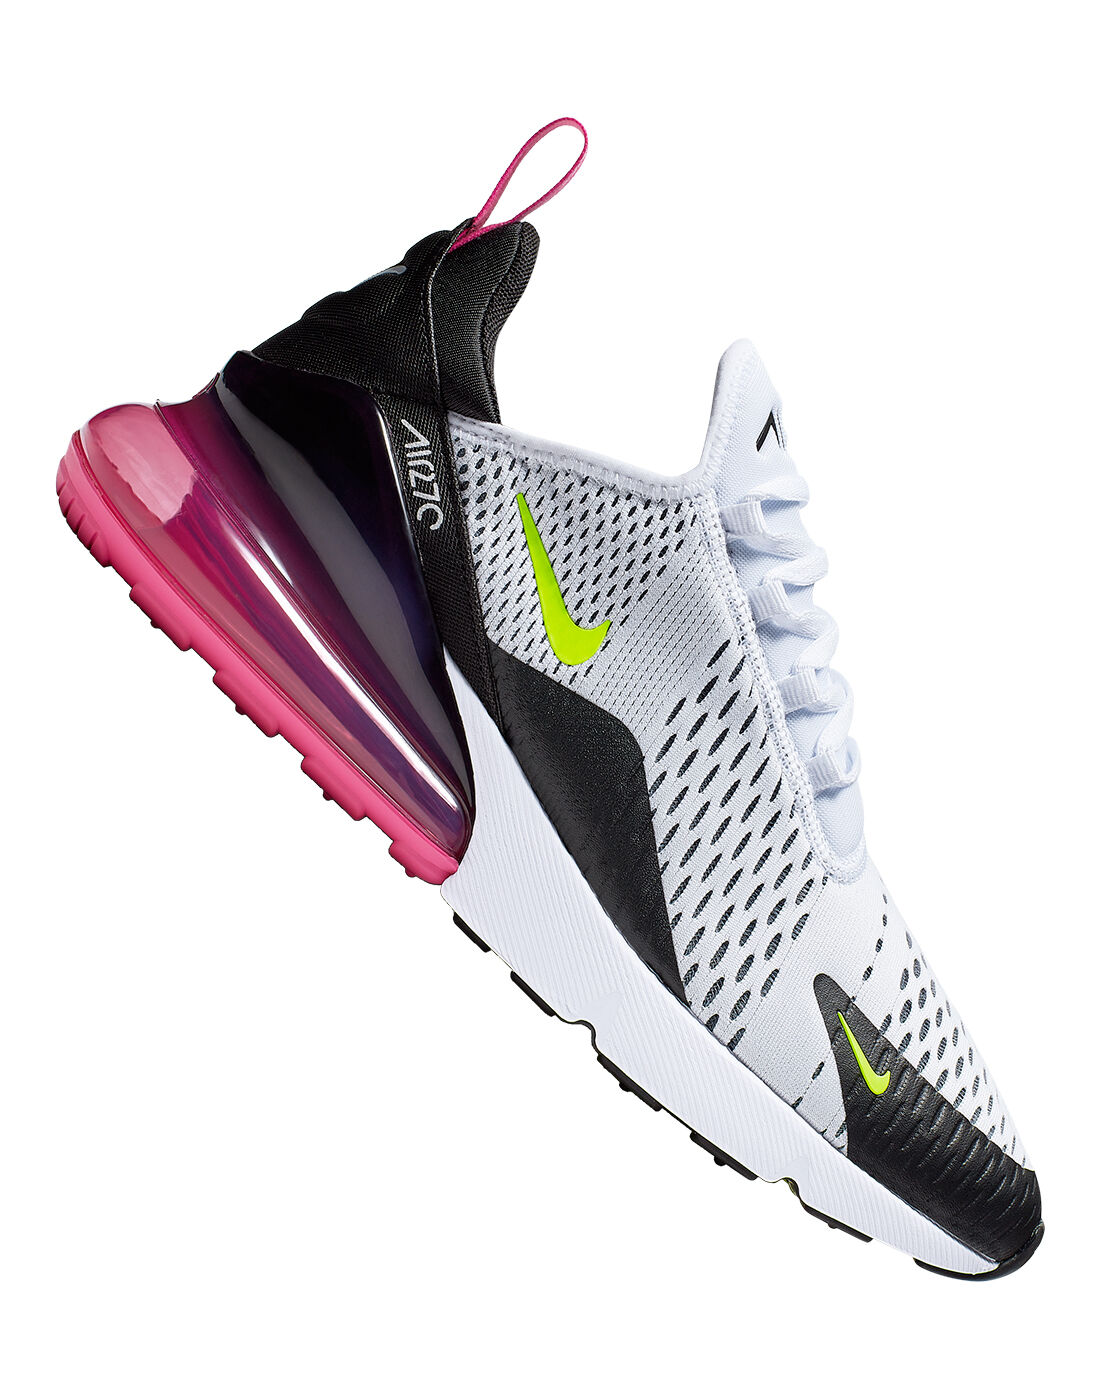 Men's White & Pink Nike Air Max 270 | Life Style Sports